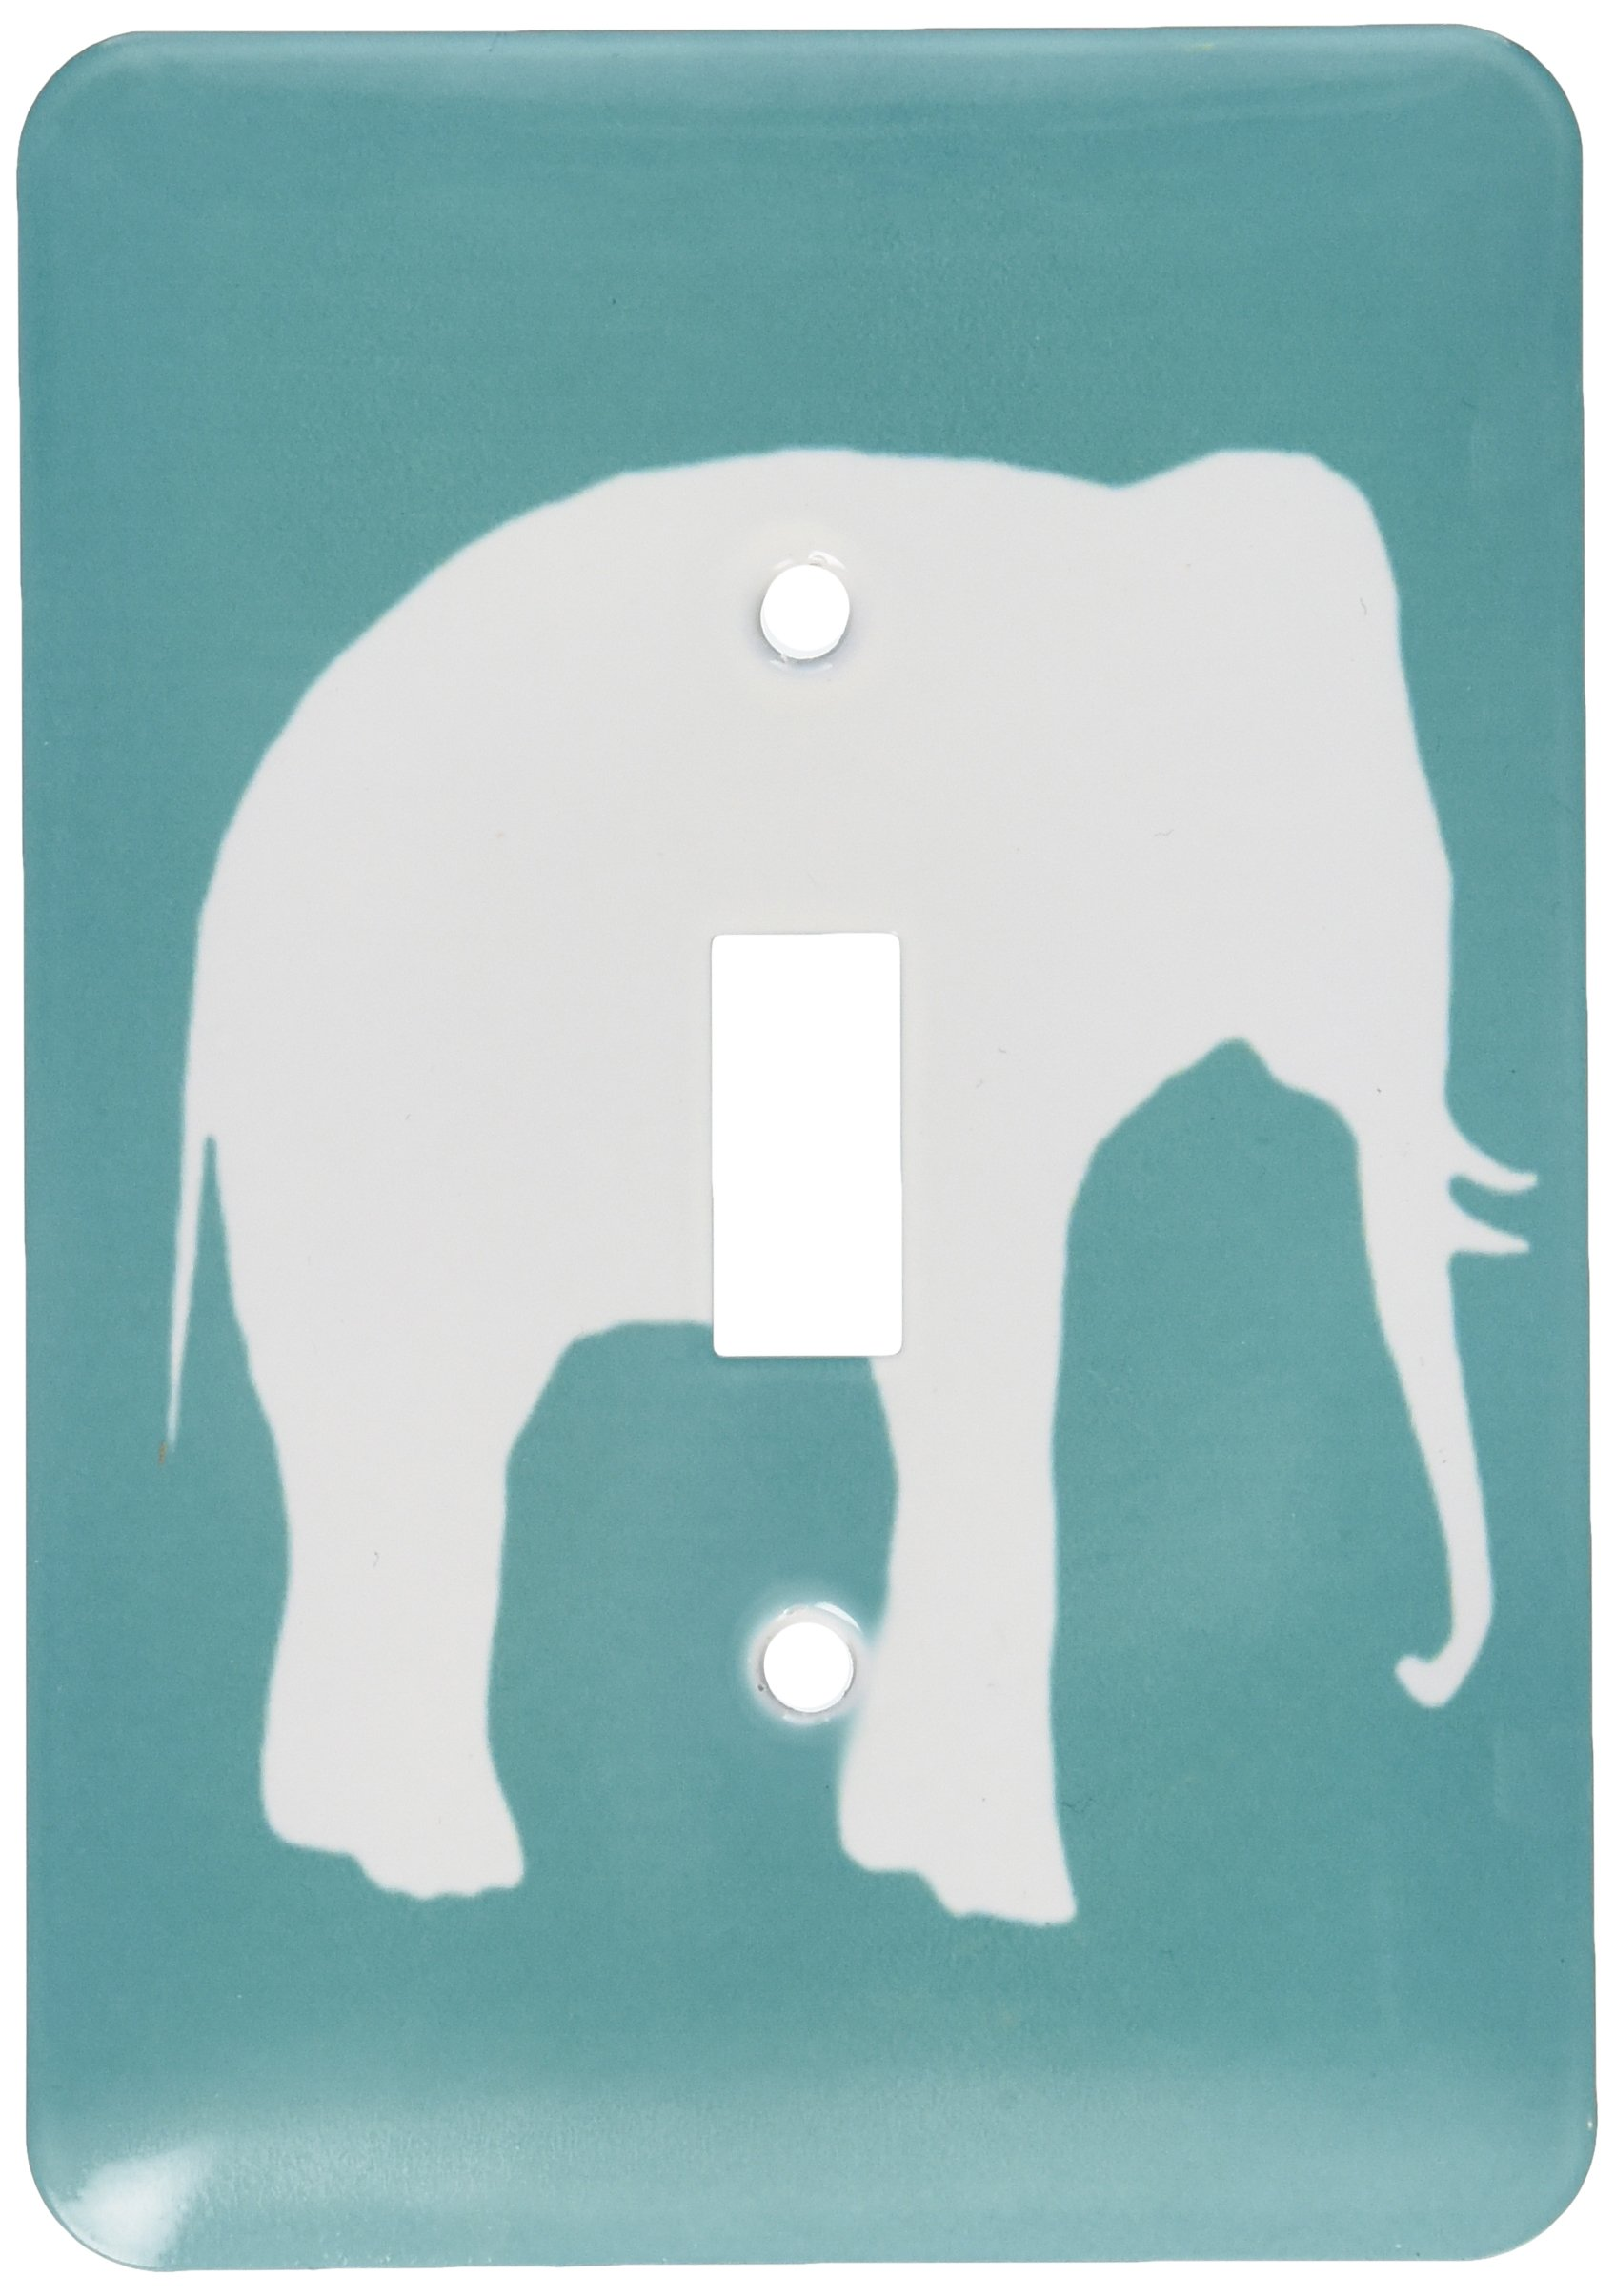 3dRose lsp_164913_1 White Elephant Silhouette Teal Turquoise Aqua Blue Wildlife Animal Light Switch Cover